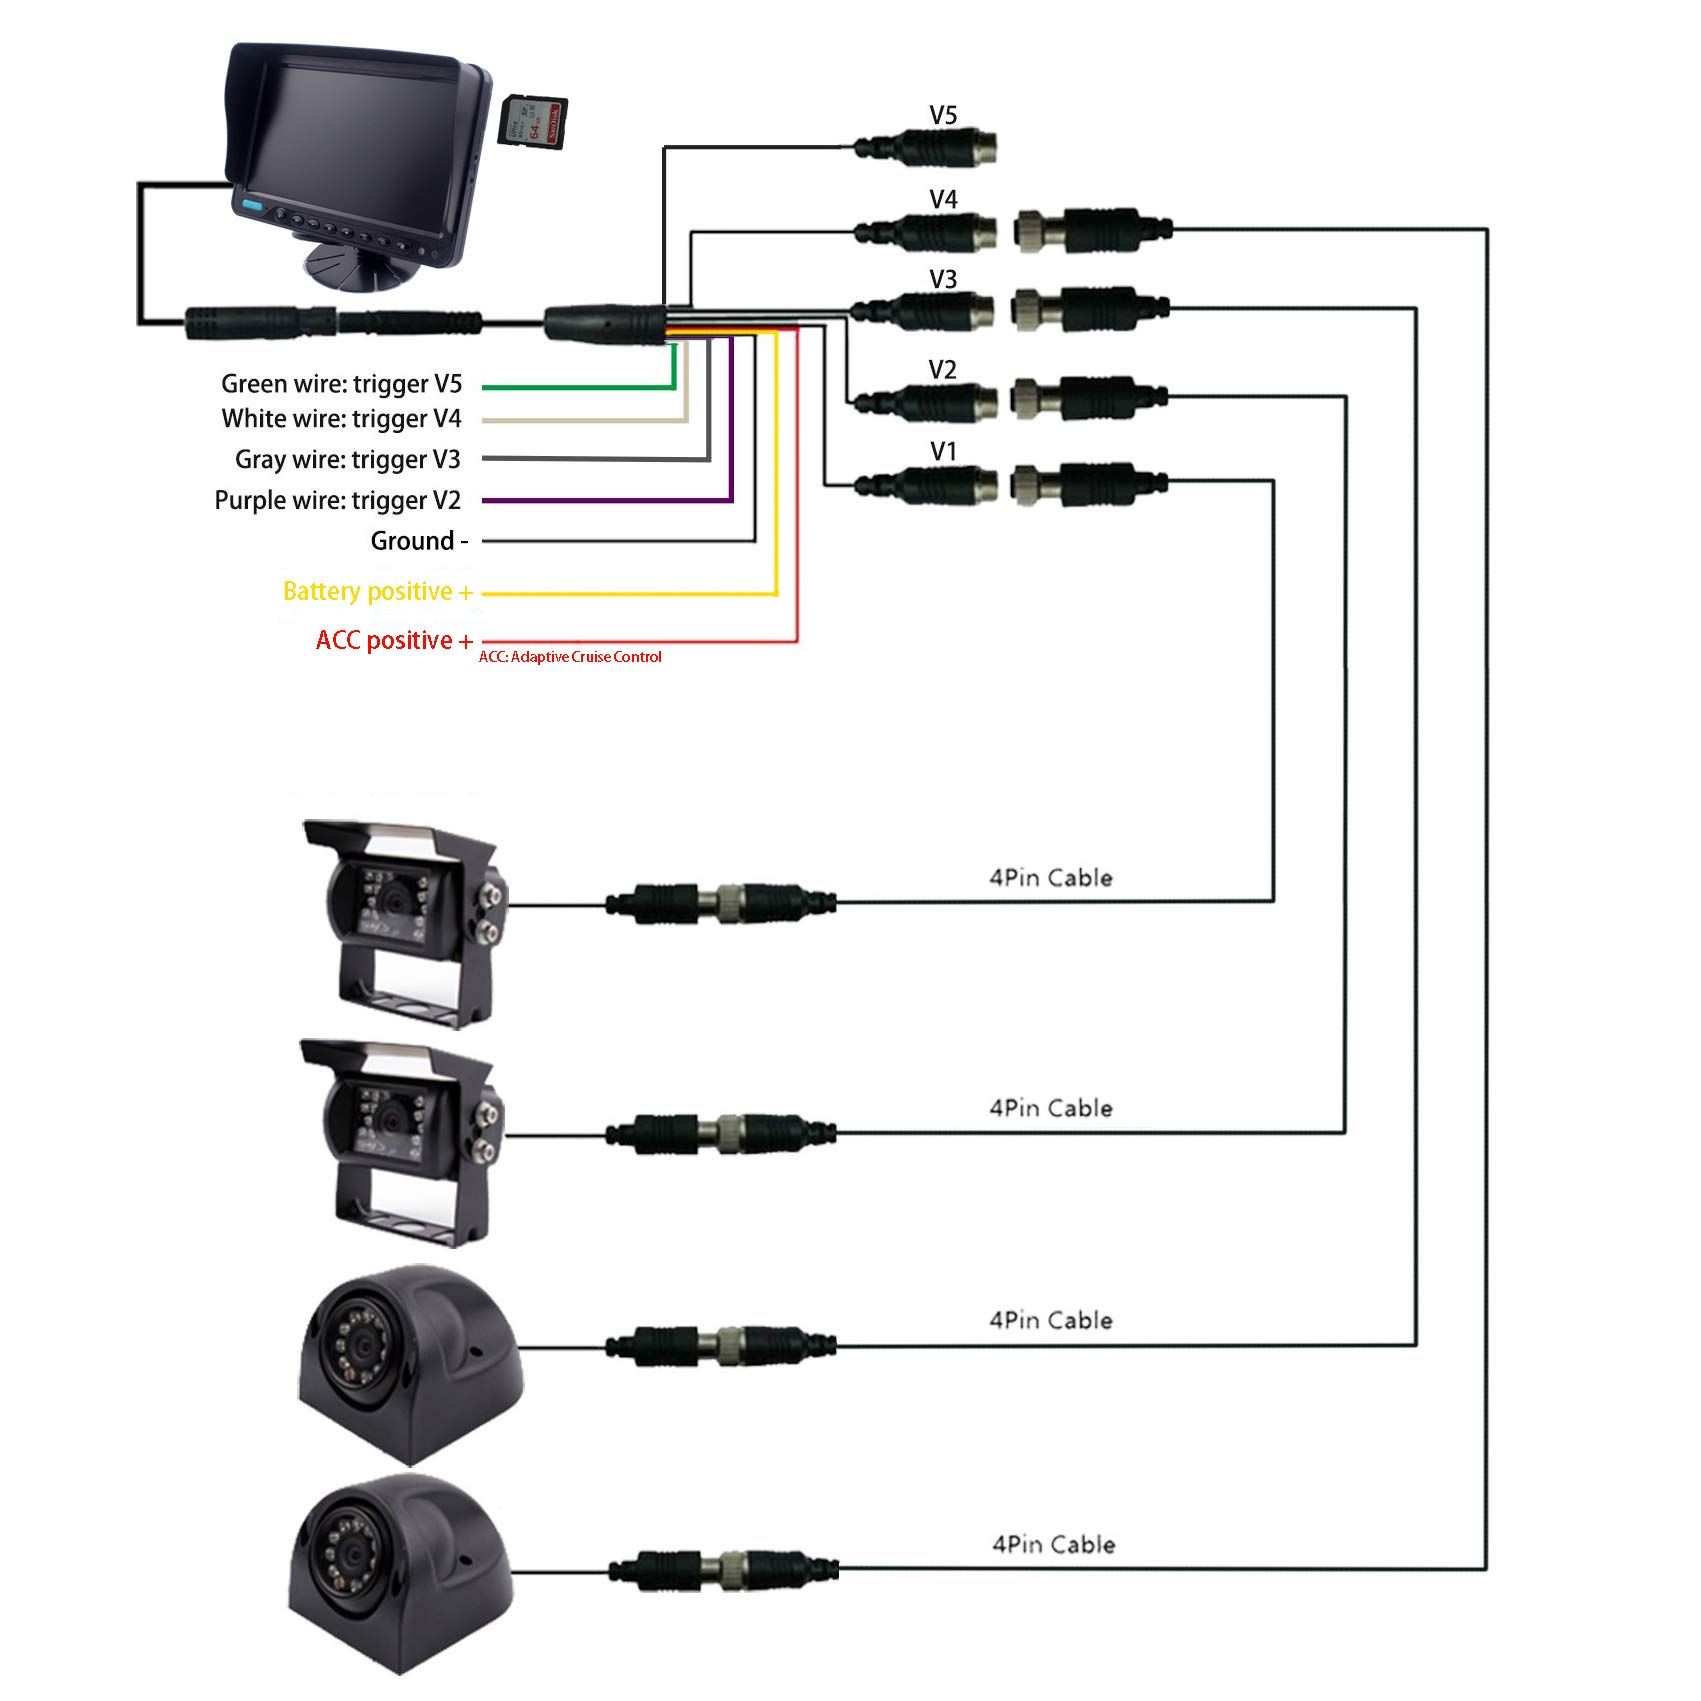 Wiring Rv Backup Camera Diagram from images-na.ssl-images-amazon.com